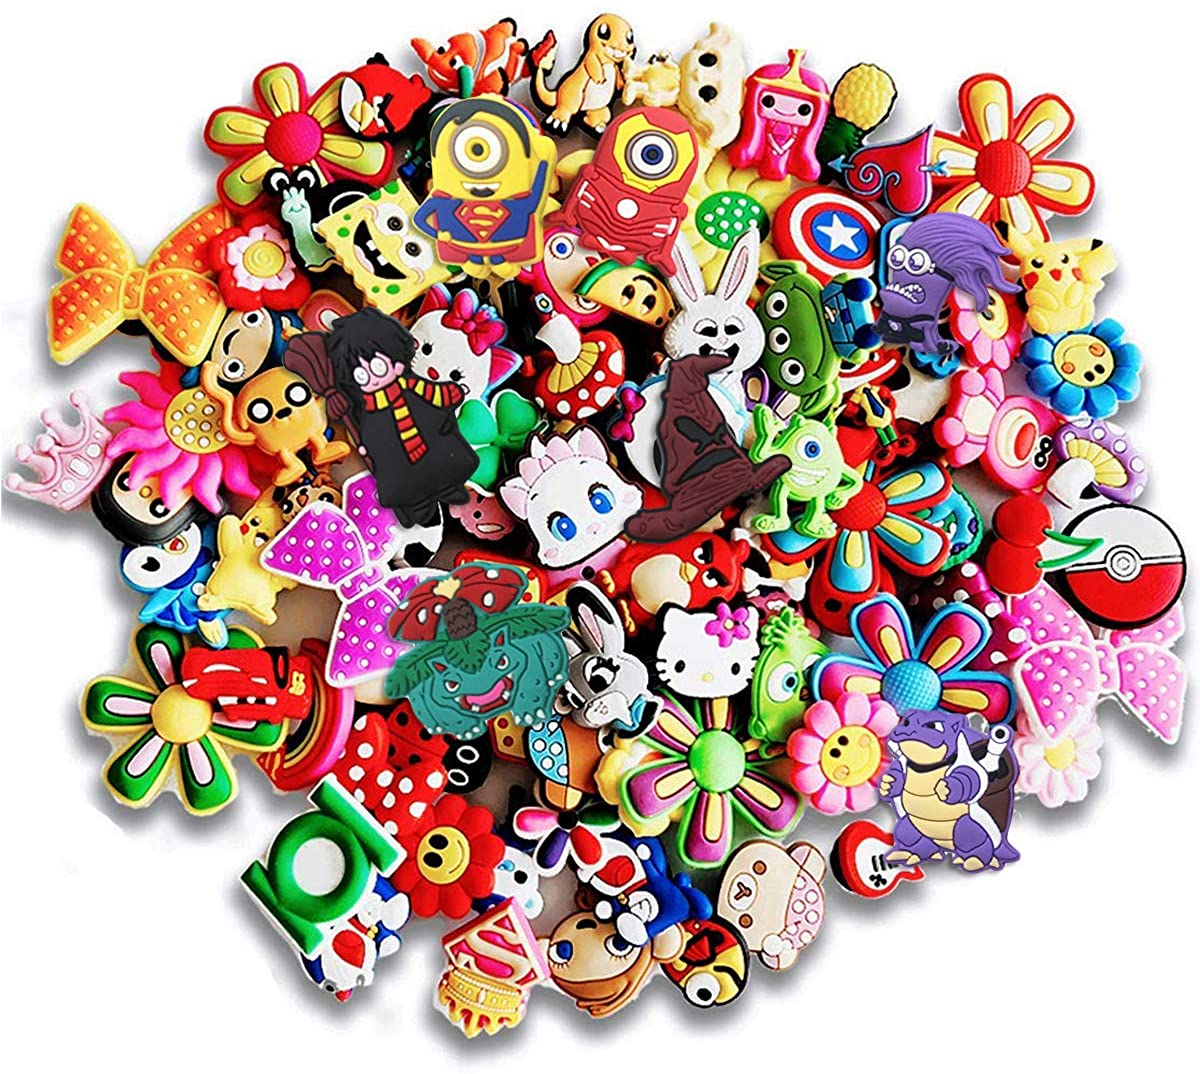 25 Pcs PVC Different Shoe Charms for Shoe Decoration & Bracelet Wristband Kids Party Birthday Gifts